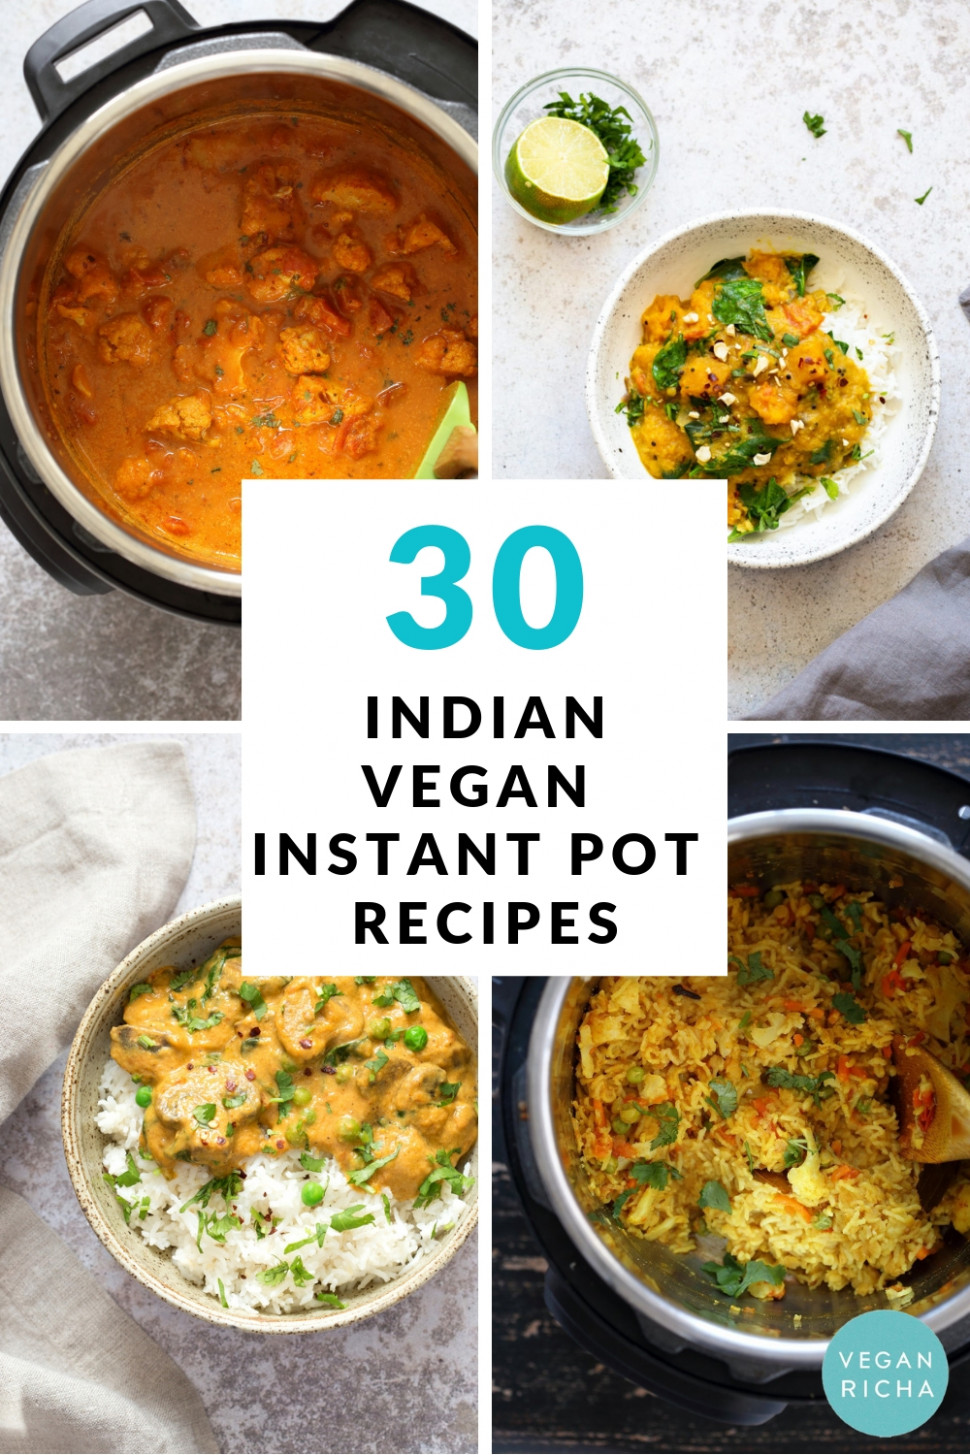 11 Instant Pot Vegan Indian Recipes - Vegan Richa - indian recipes vegetarian